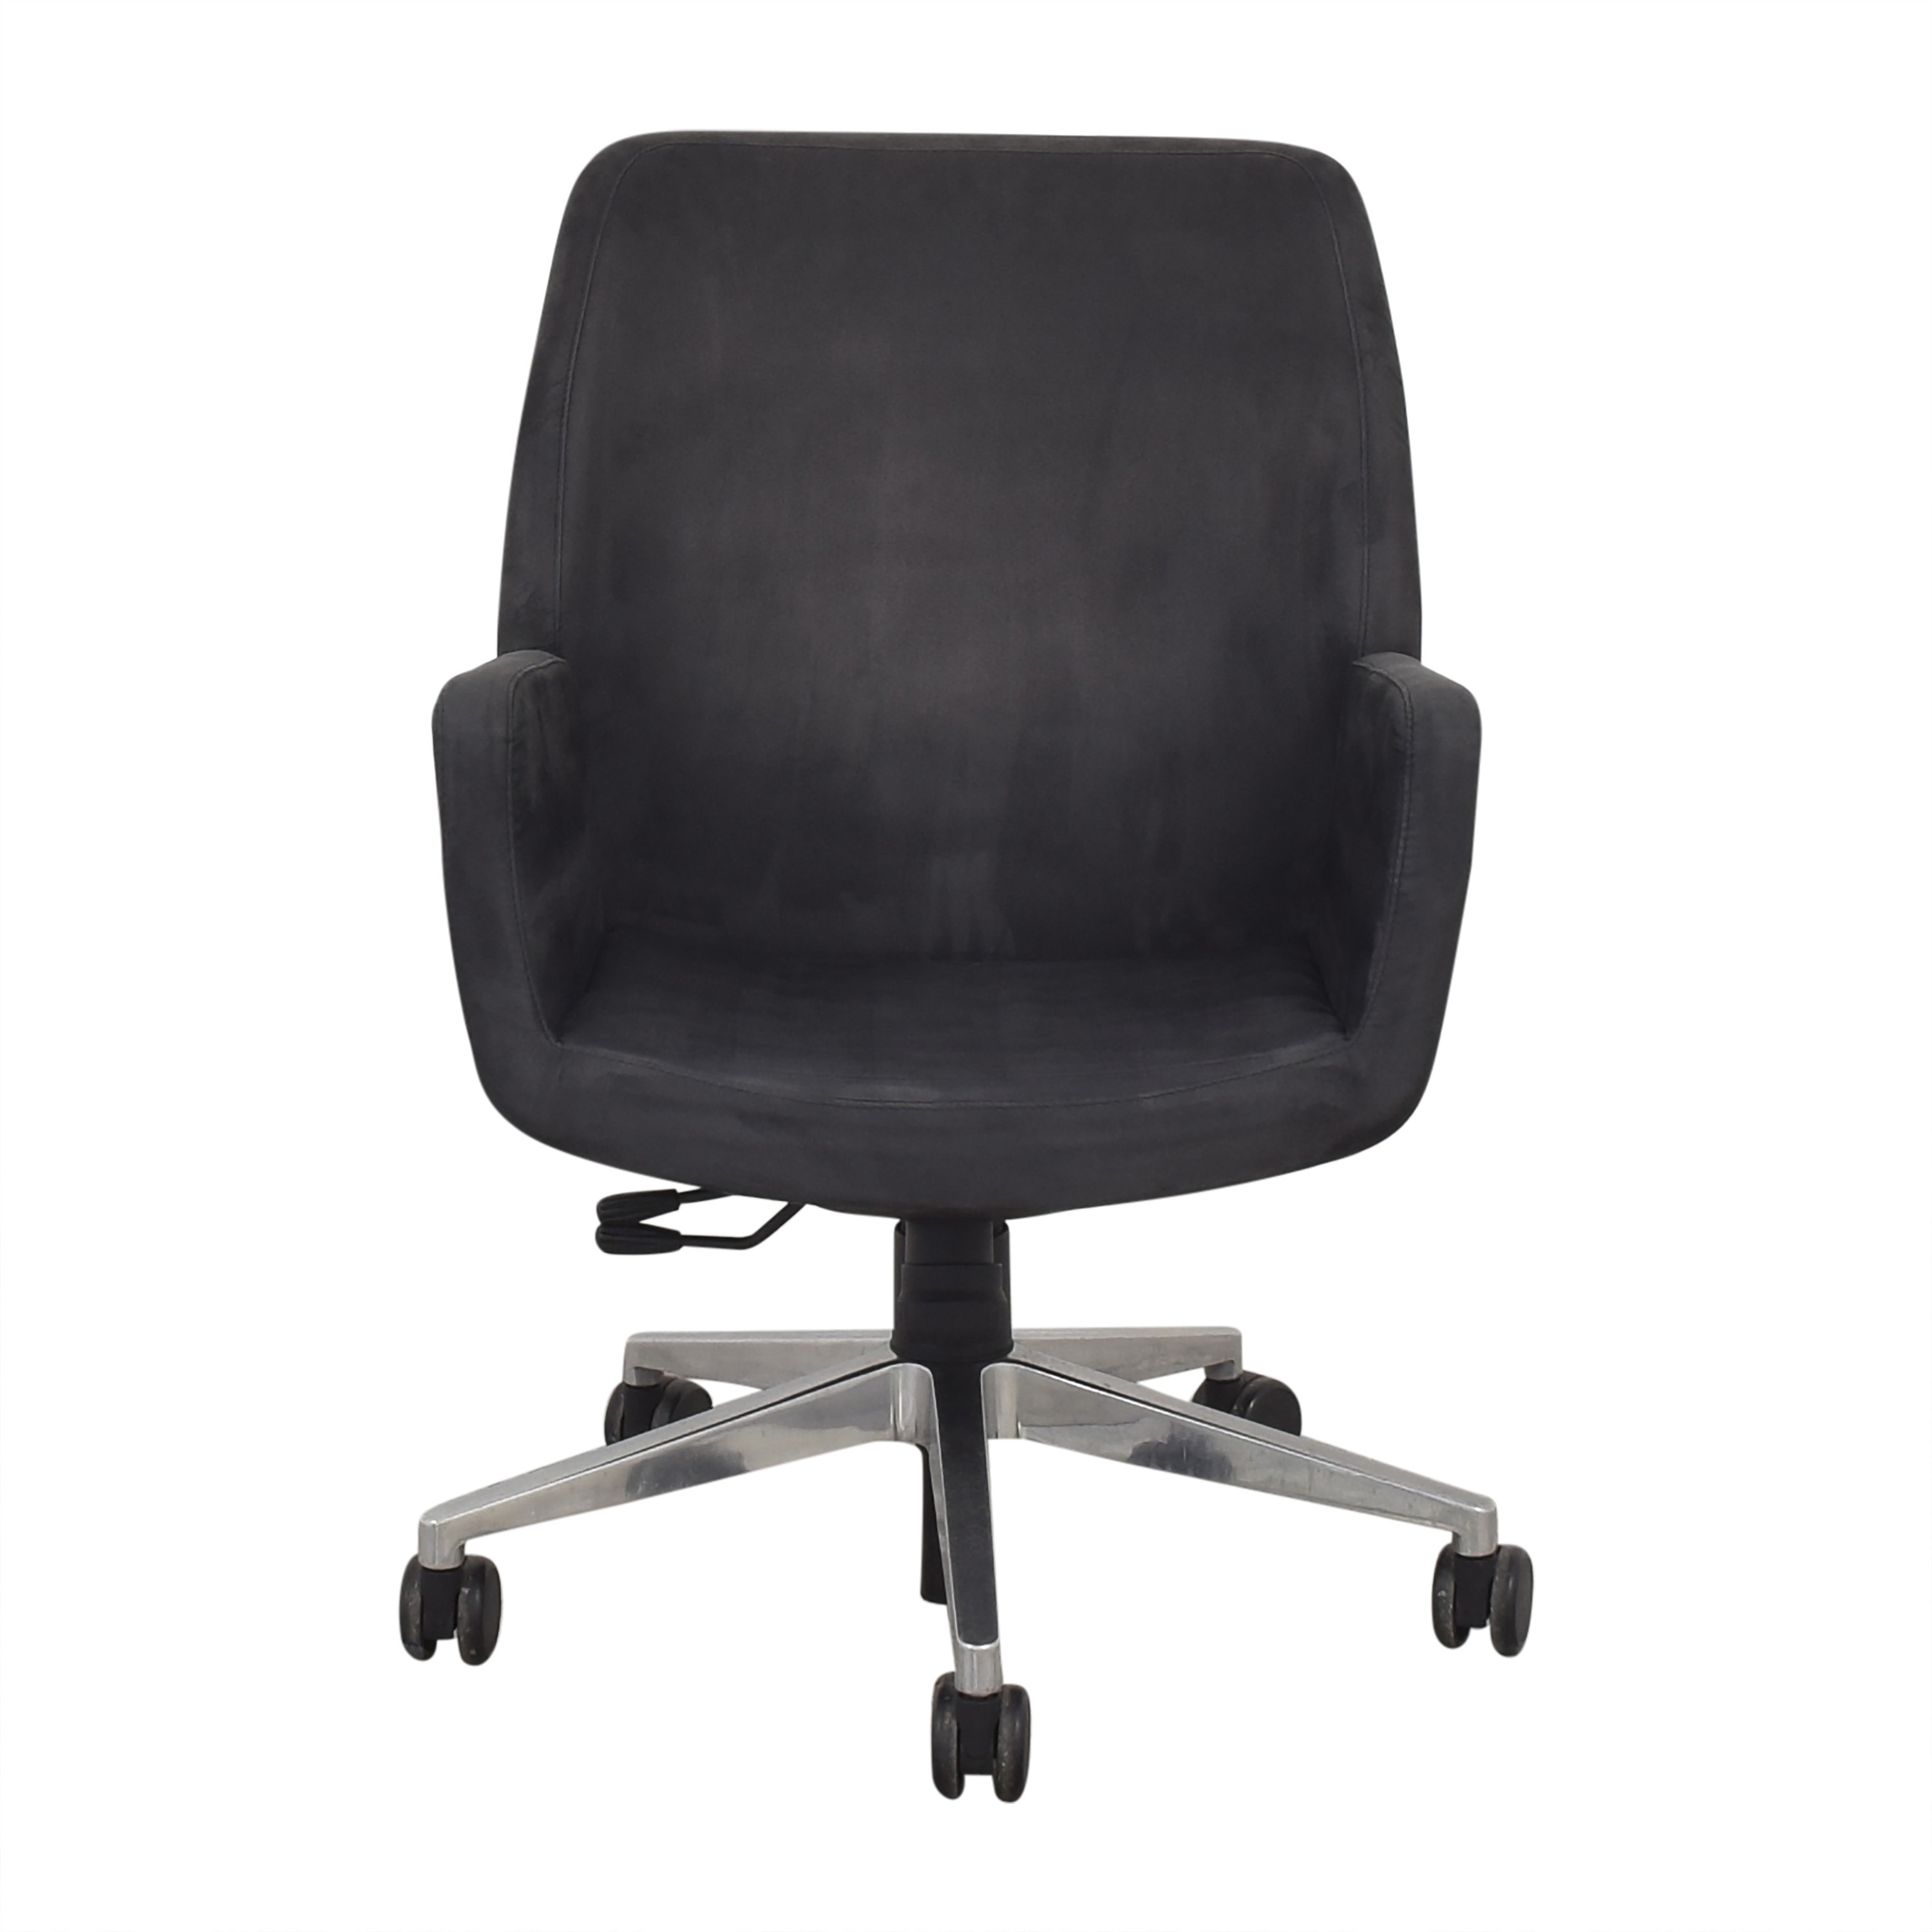 Steelcase Steelcase Coalesse Bindu Guest Chair used